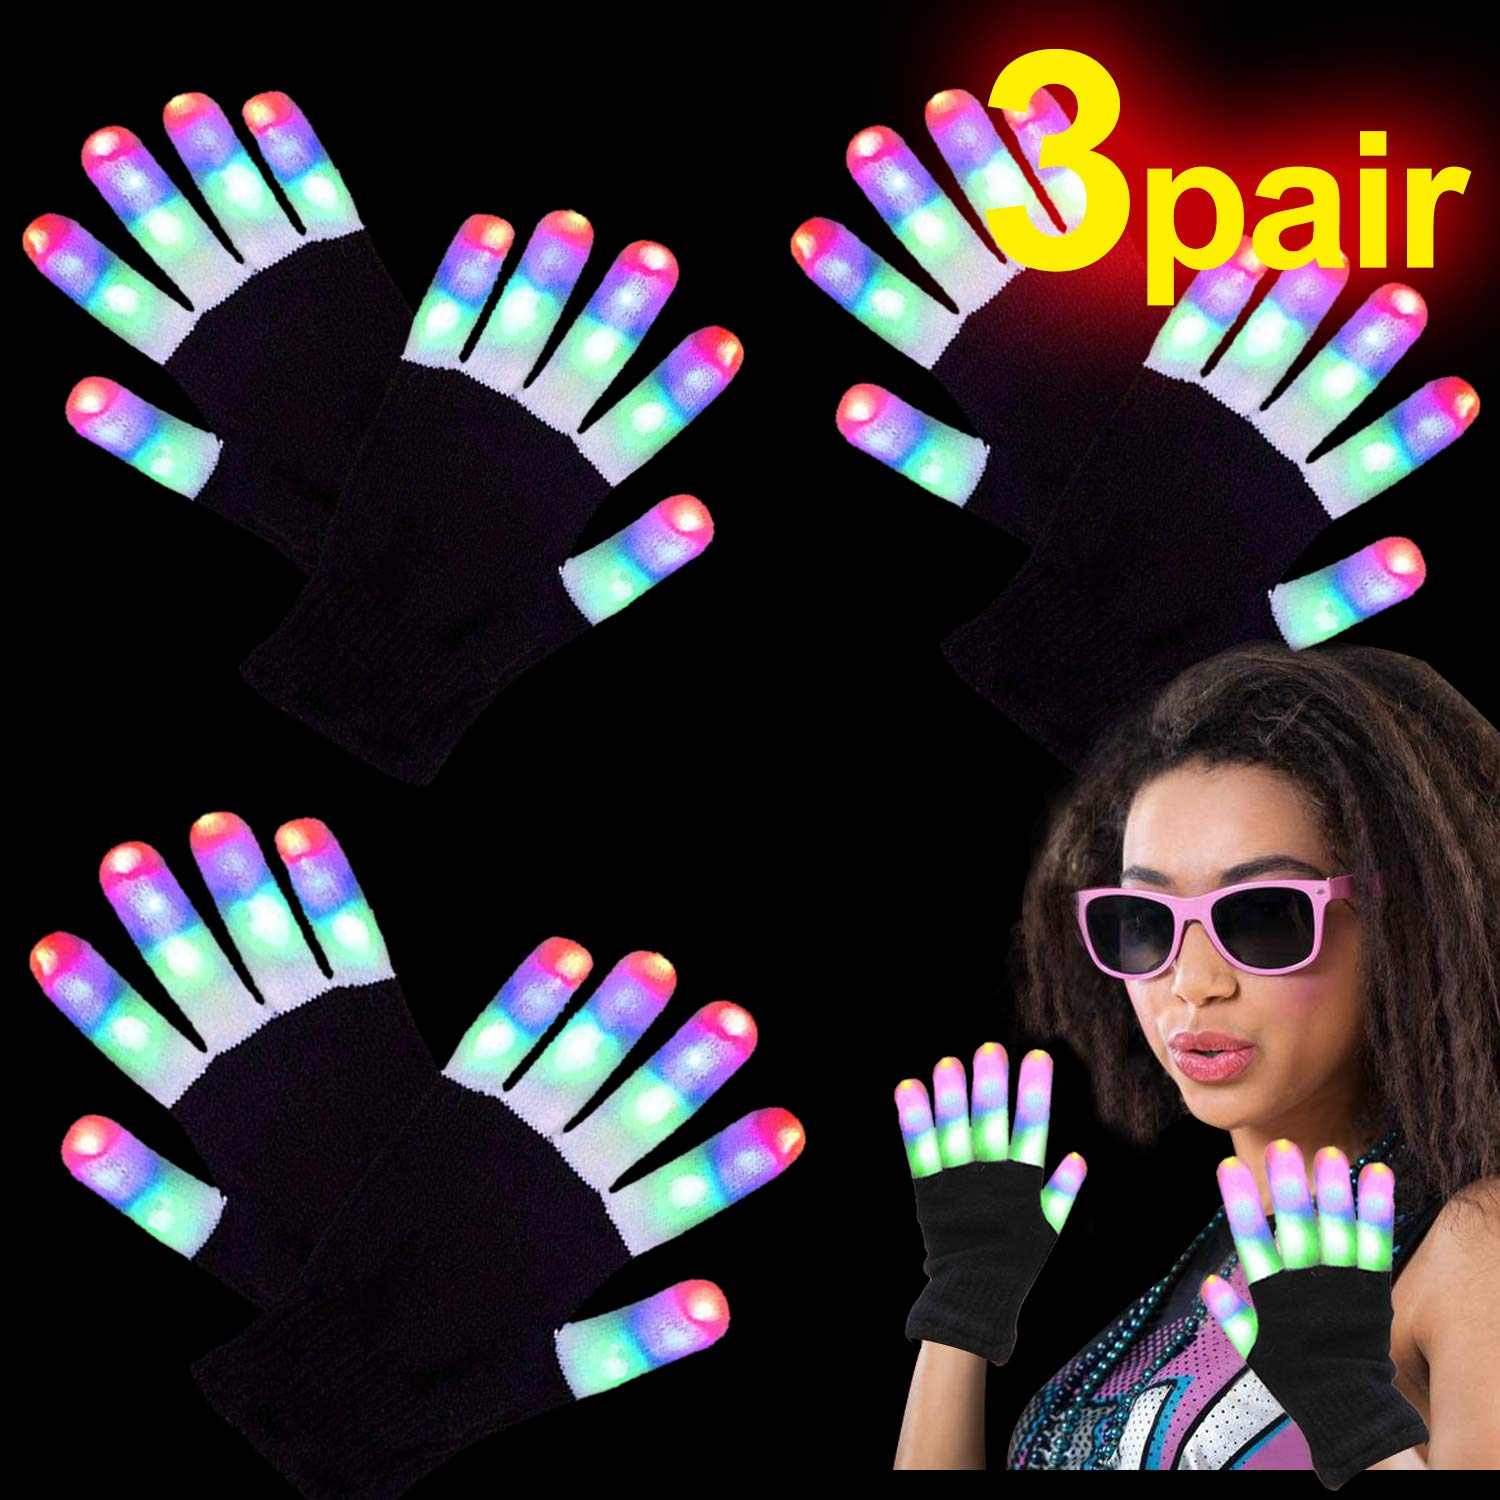 LED Gloves for Kids Teens Men Wemen, 3 Pairs Neon Light Up Rave Glow Gloves 3 Colors 6 Modes Flashing Glow in the Dark Party Supplies Christmas Costume Clubbing Party Favors Novelty Toys, Medium